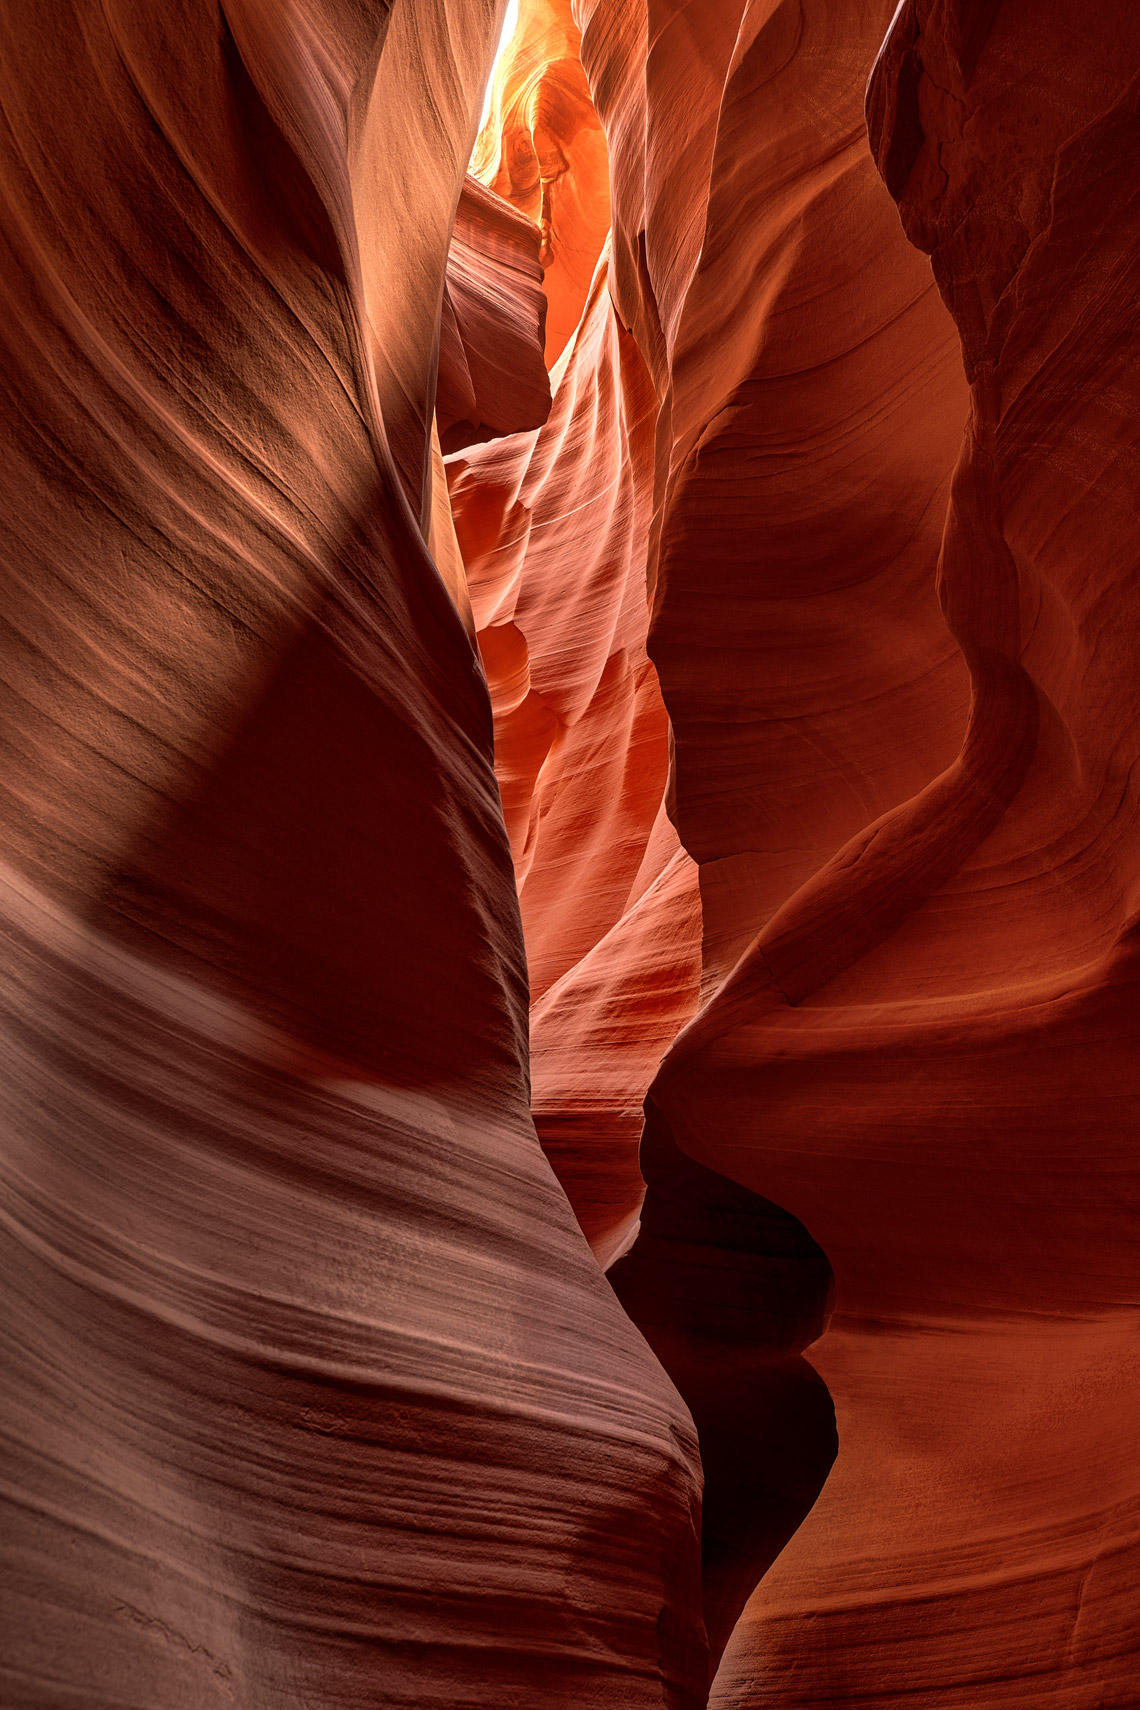 Antelope Canyon - Stephen Denton Photography - Stephen Denton Photography -  Los Angeles, CA / Phoenix, AZ Commercial Photographer